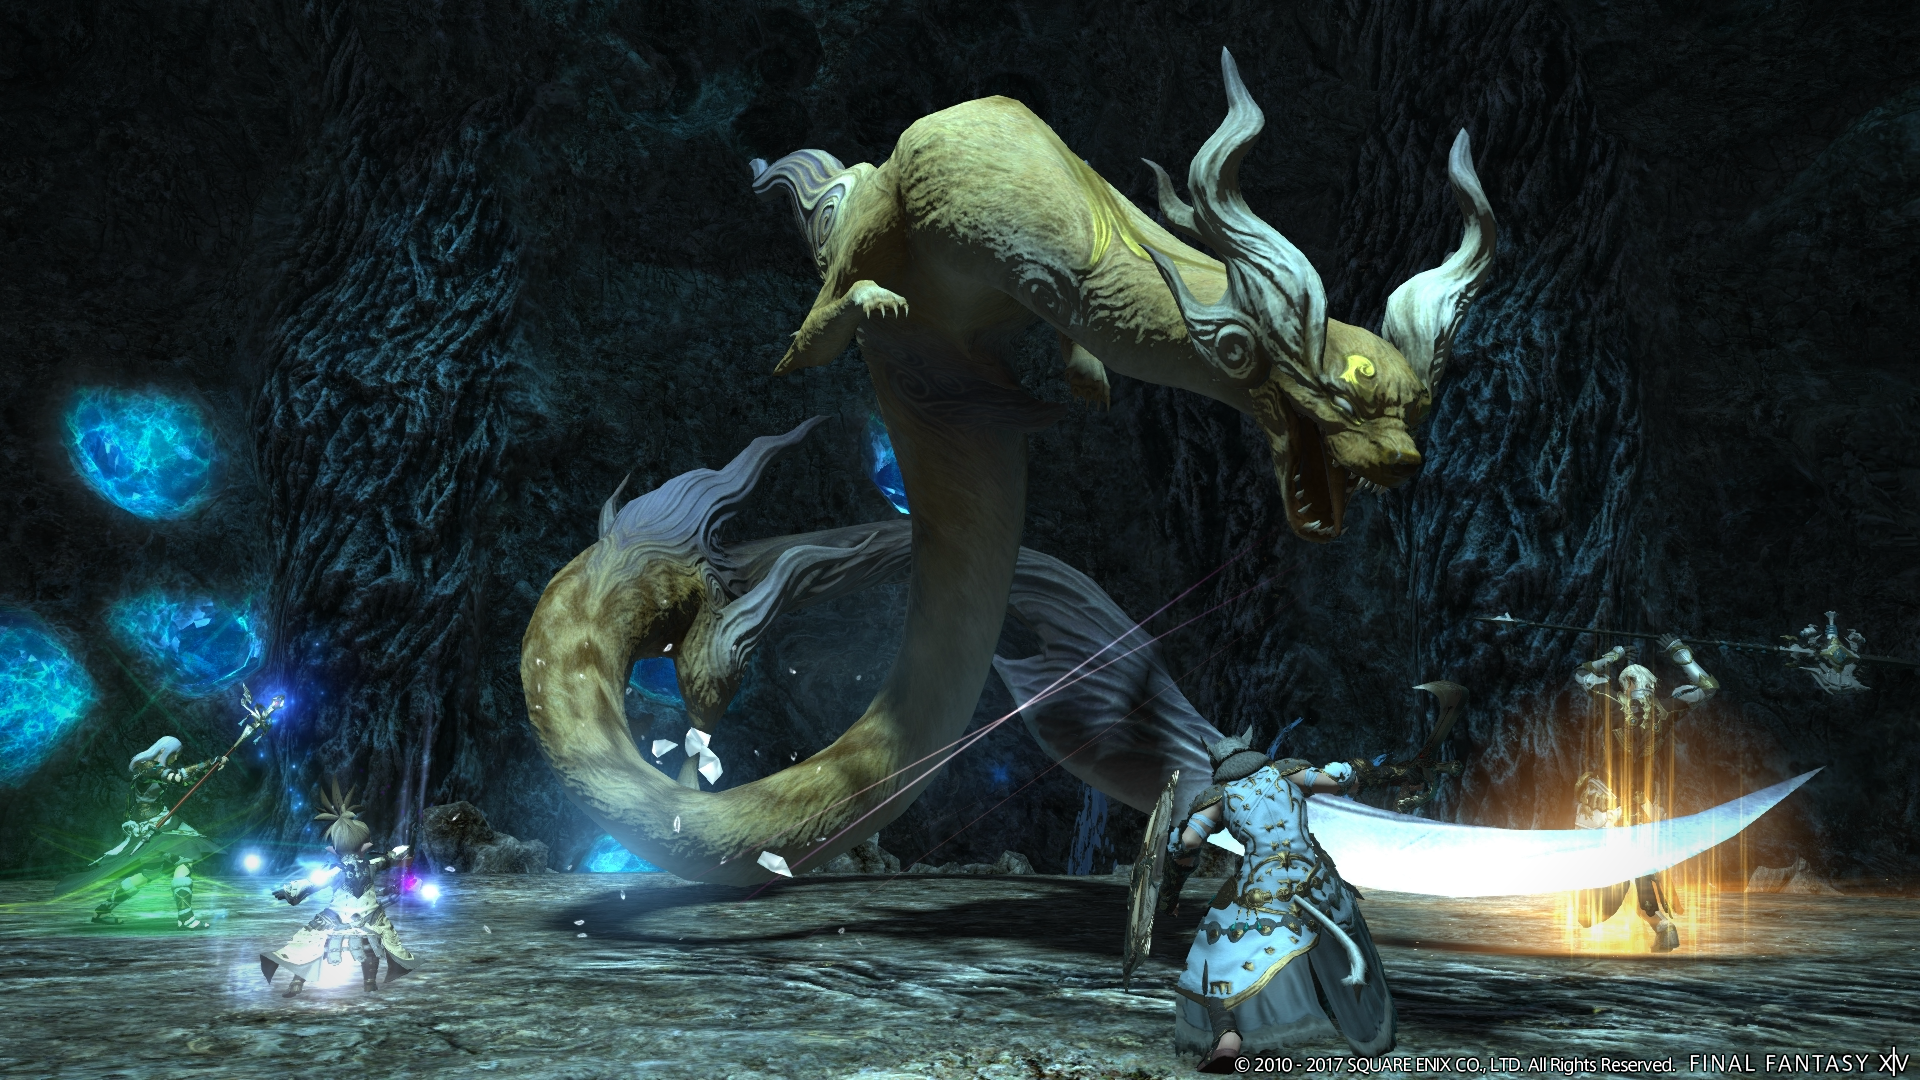 Final Fantasy XIV previews beasts, Feasts, and glamorous